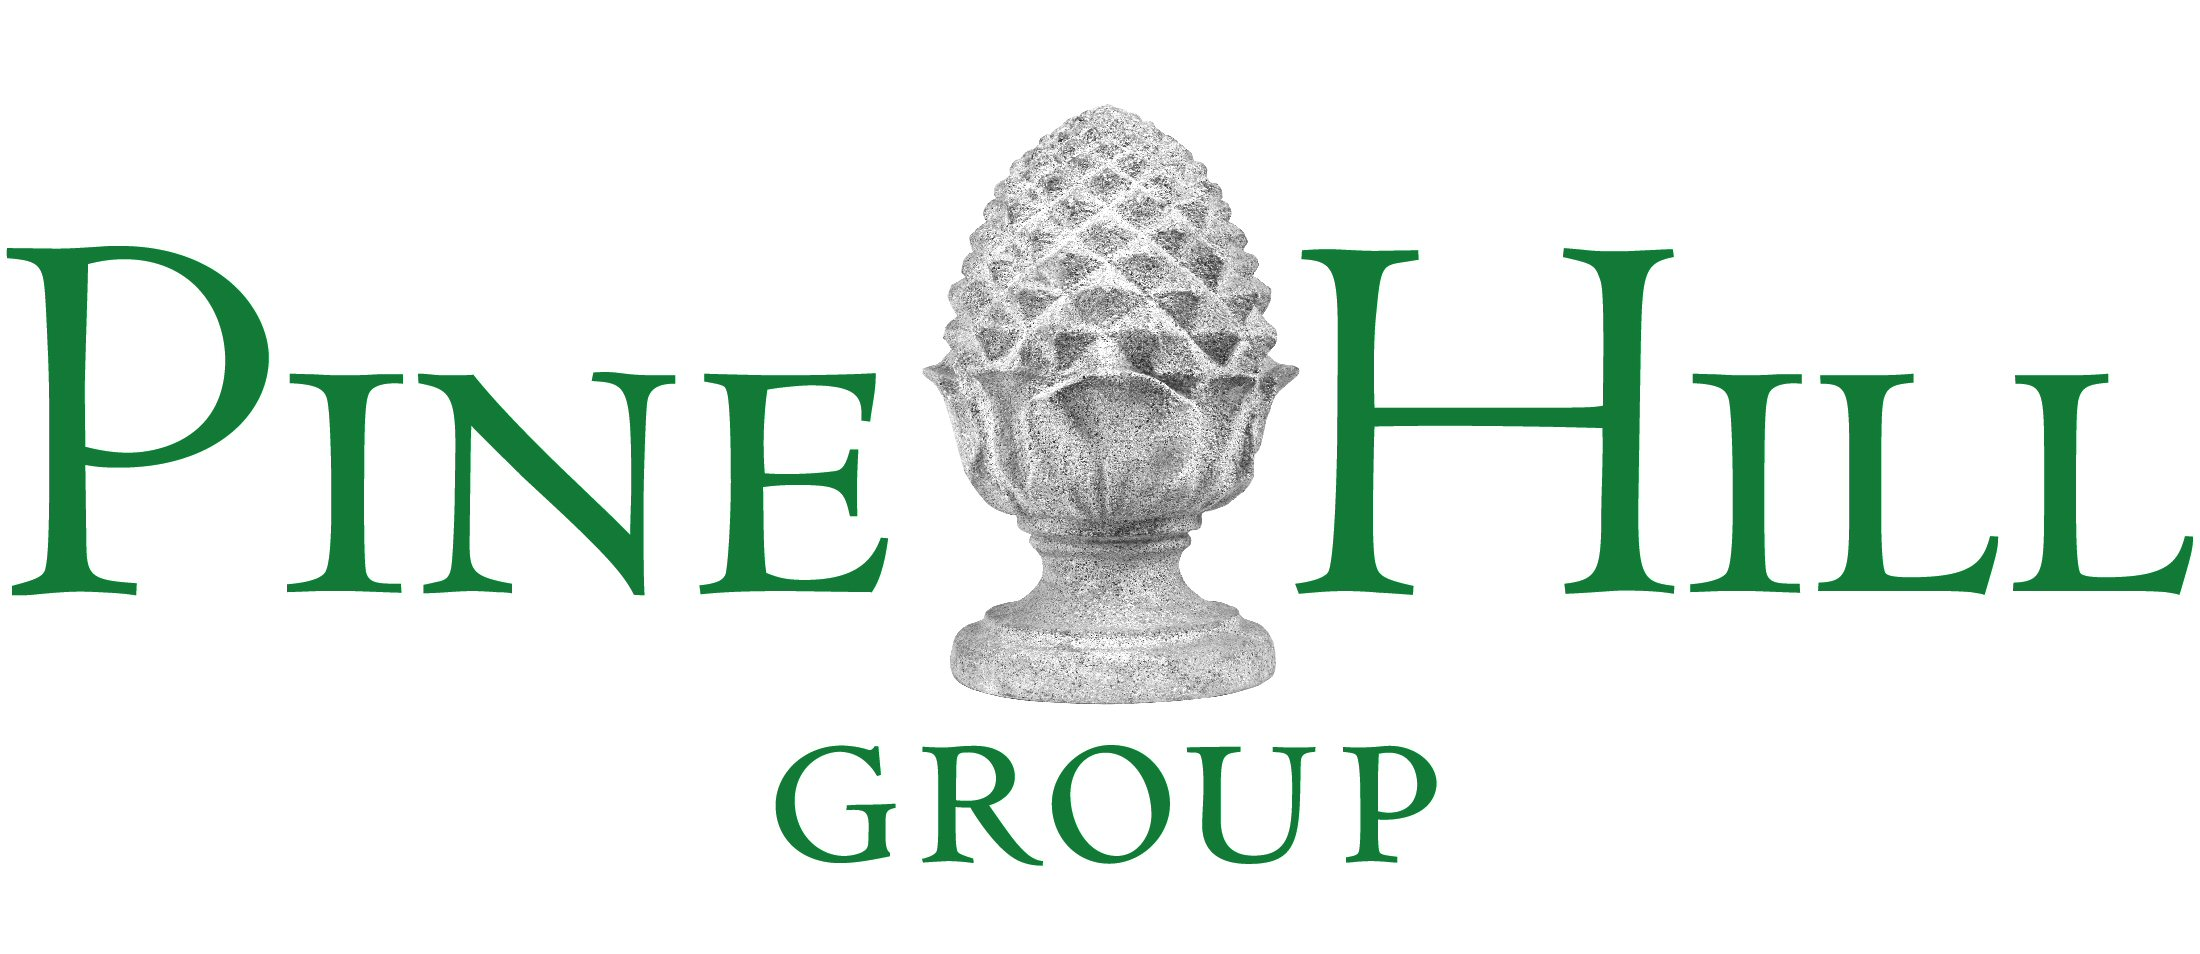 Pine Hill Group Logo